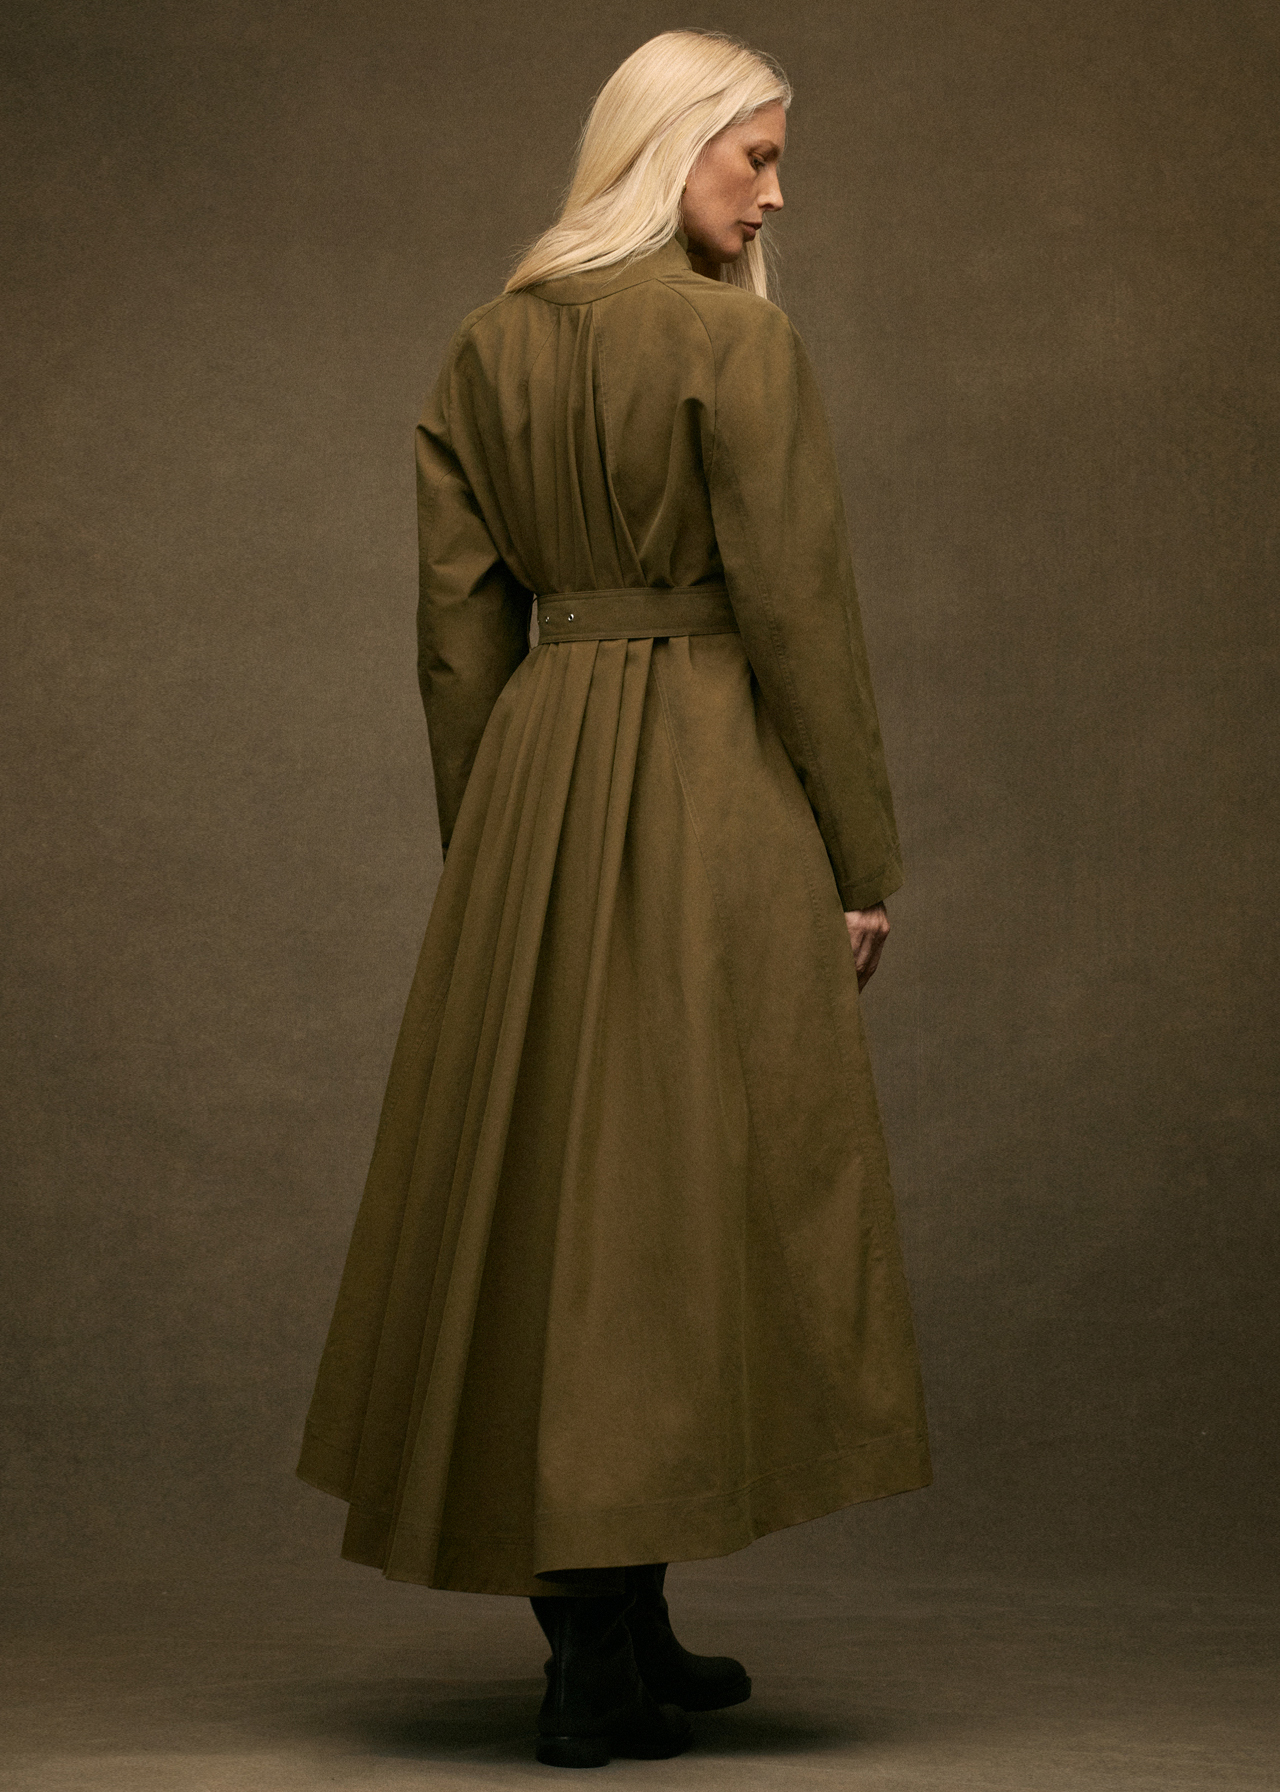 Belted Long Coat - Olive - by Zoe Gherter for Co